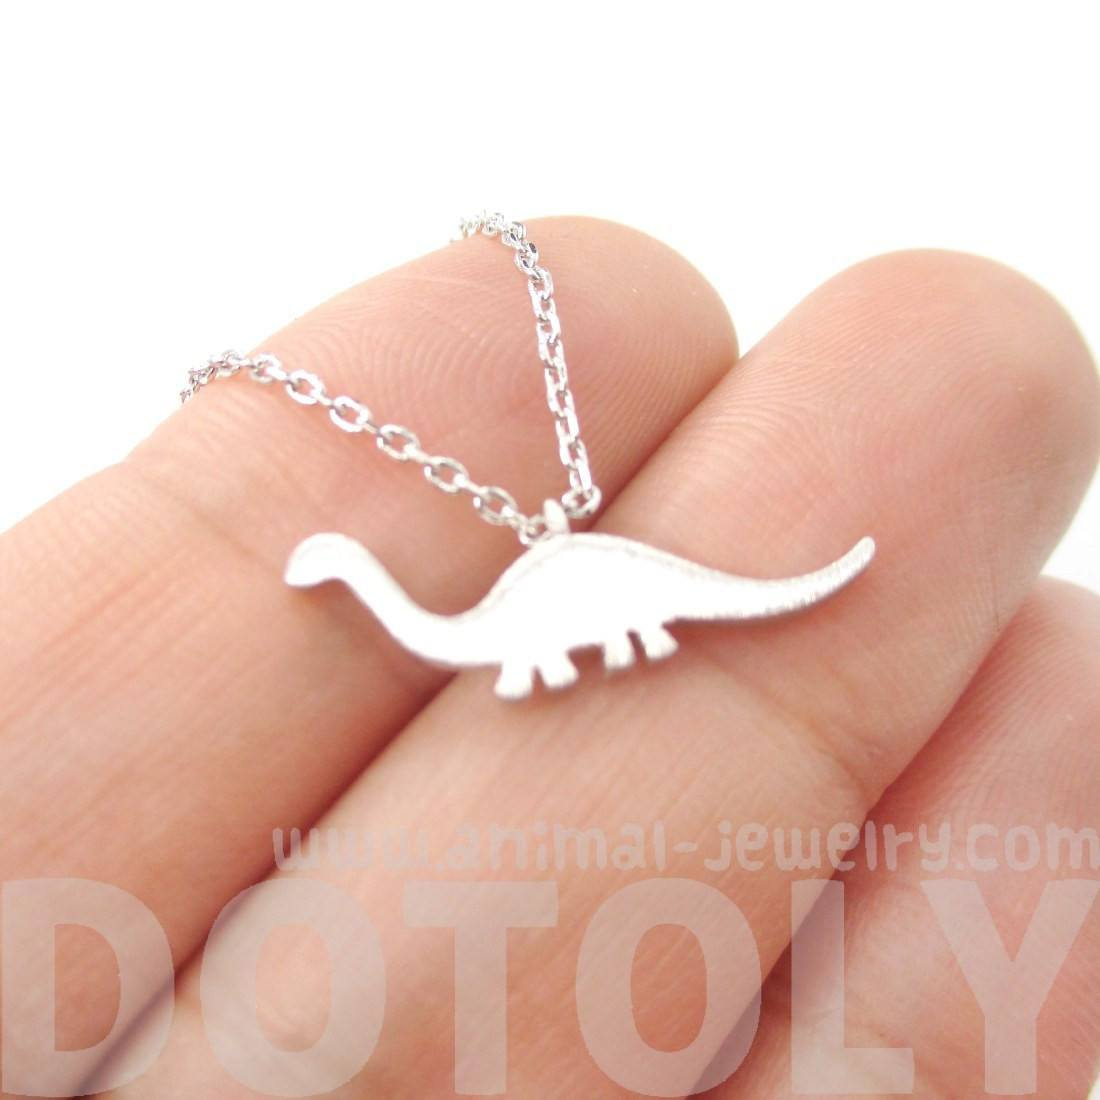 Brontosaurus Dinosaur Silhouette Animal Theme Charm Necklace in Silver